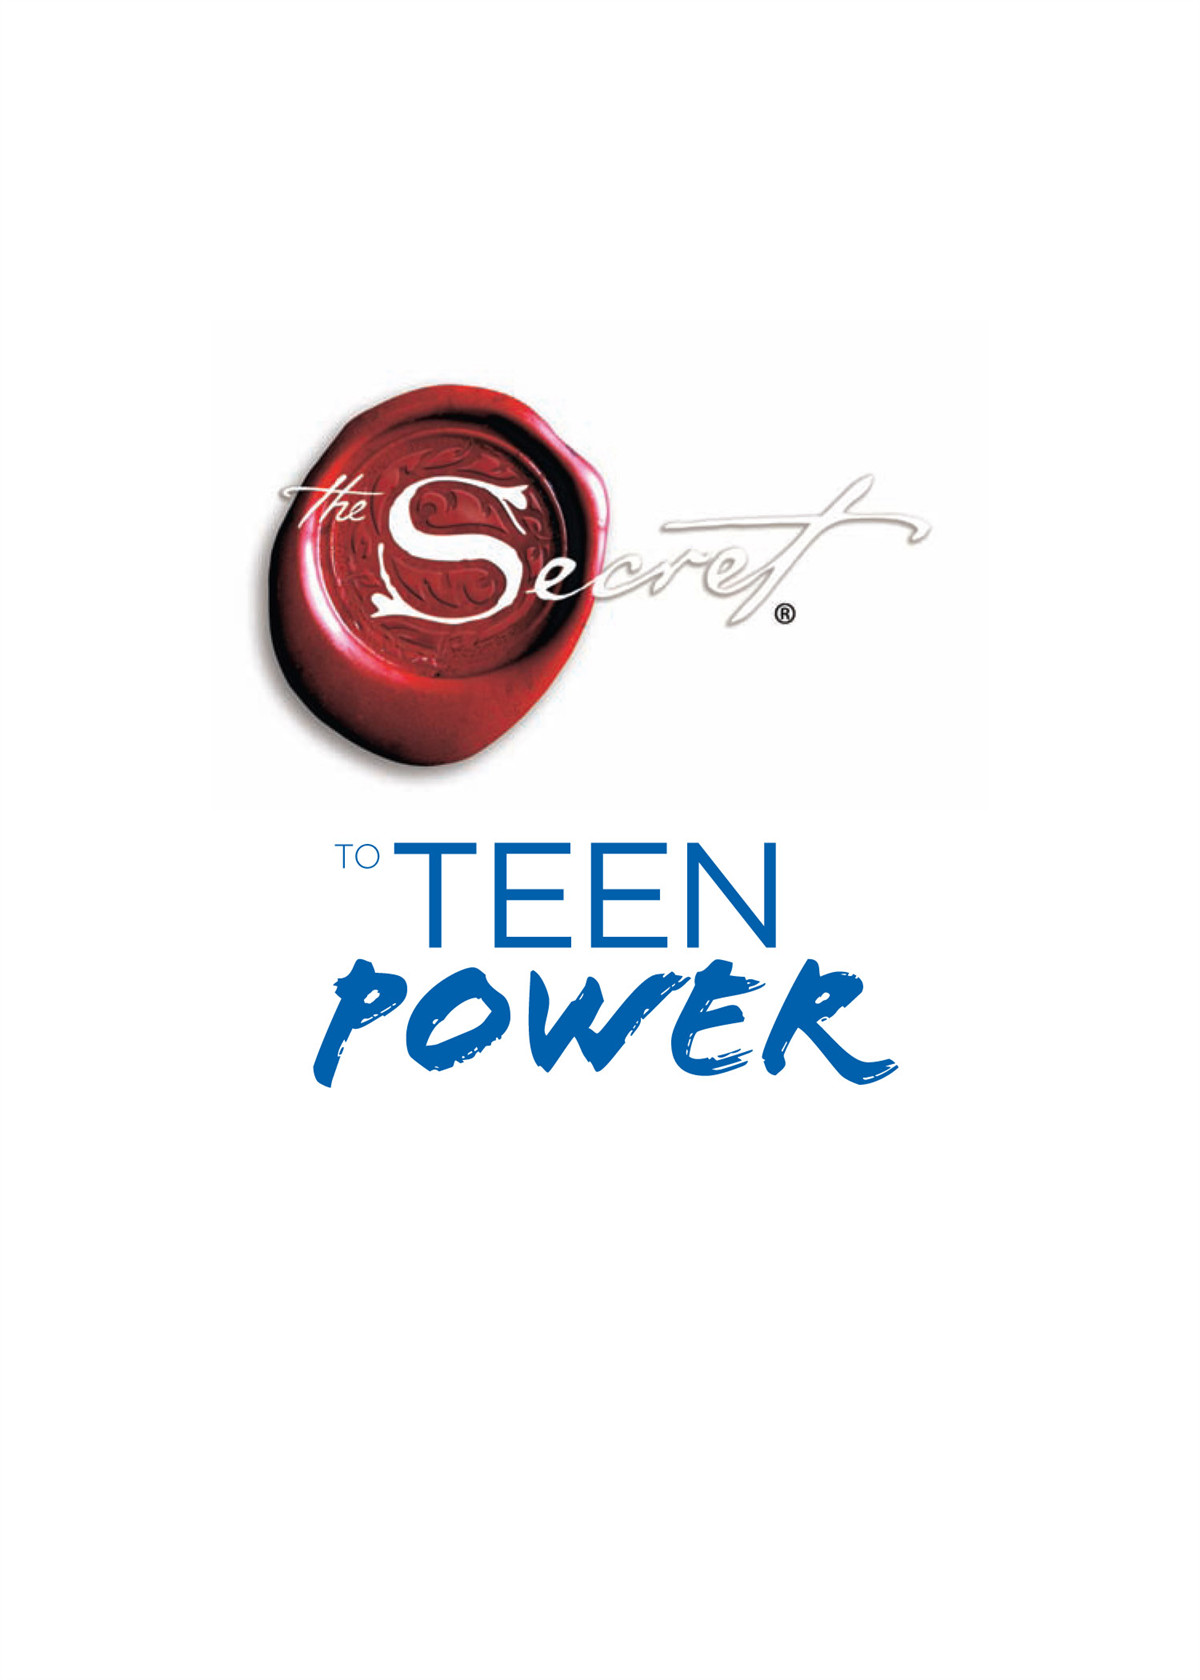 The-secret-to-teen-power-9781416994985.in01